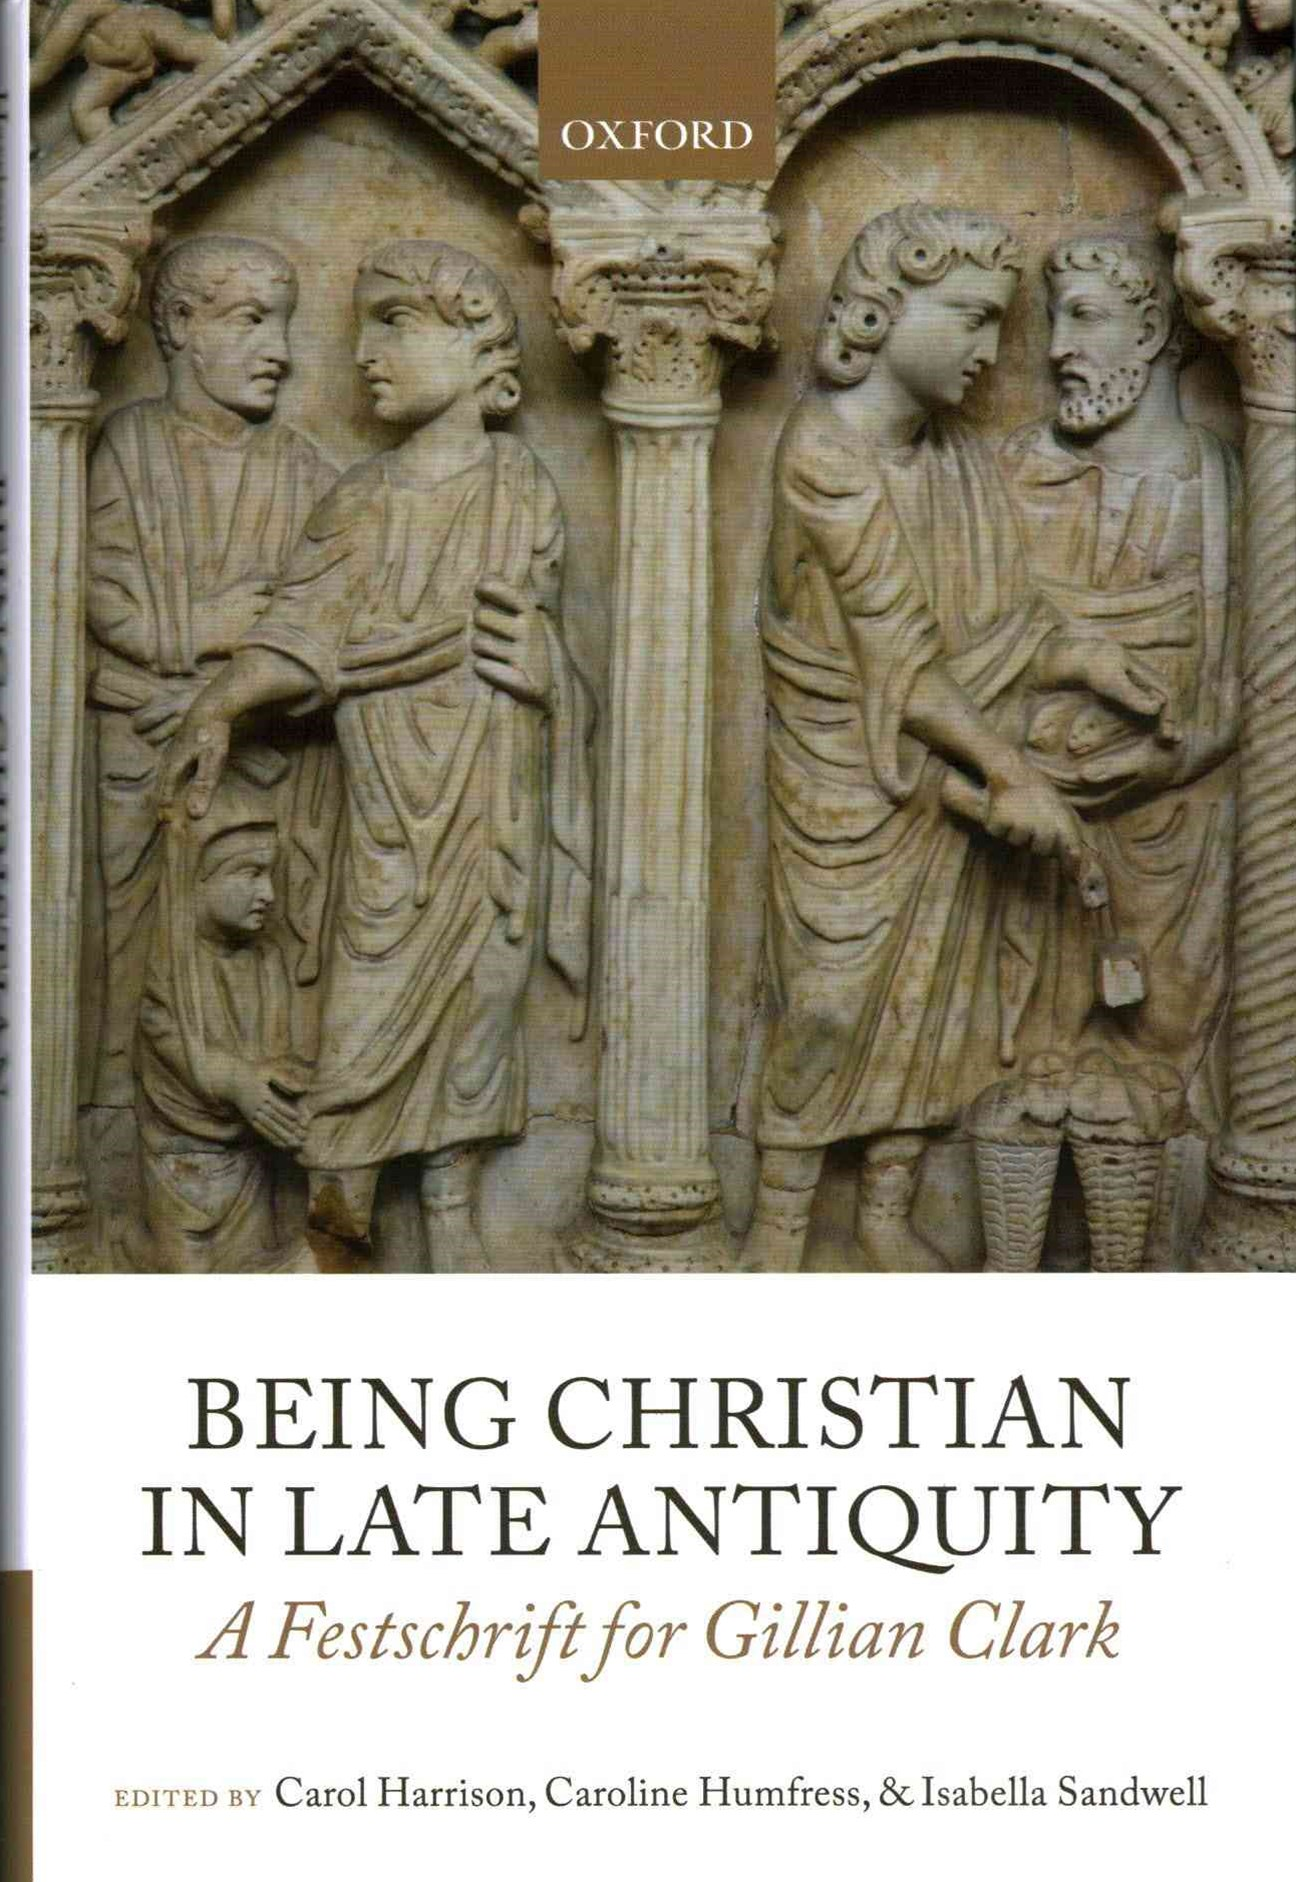 Being Christian in Late Antiquity